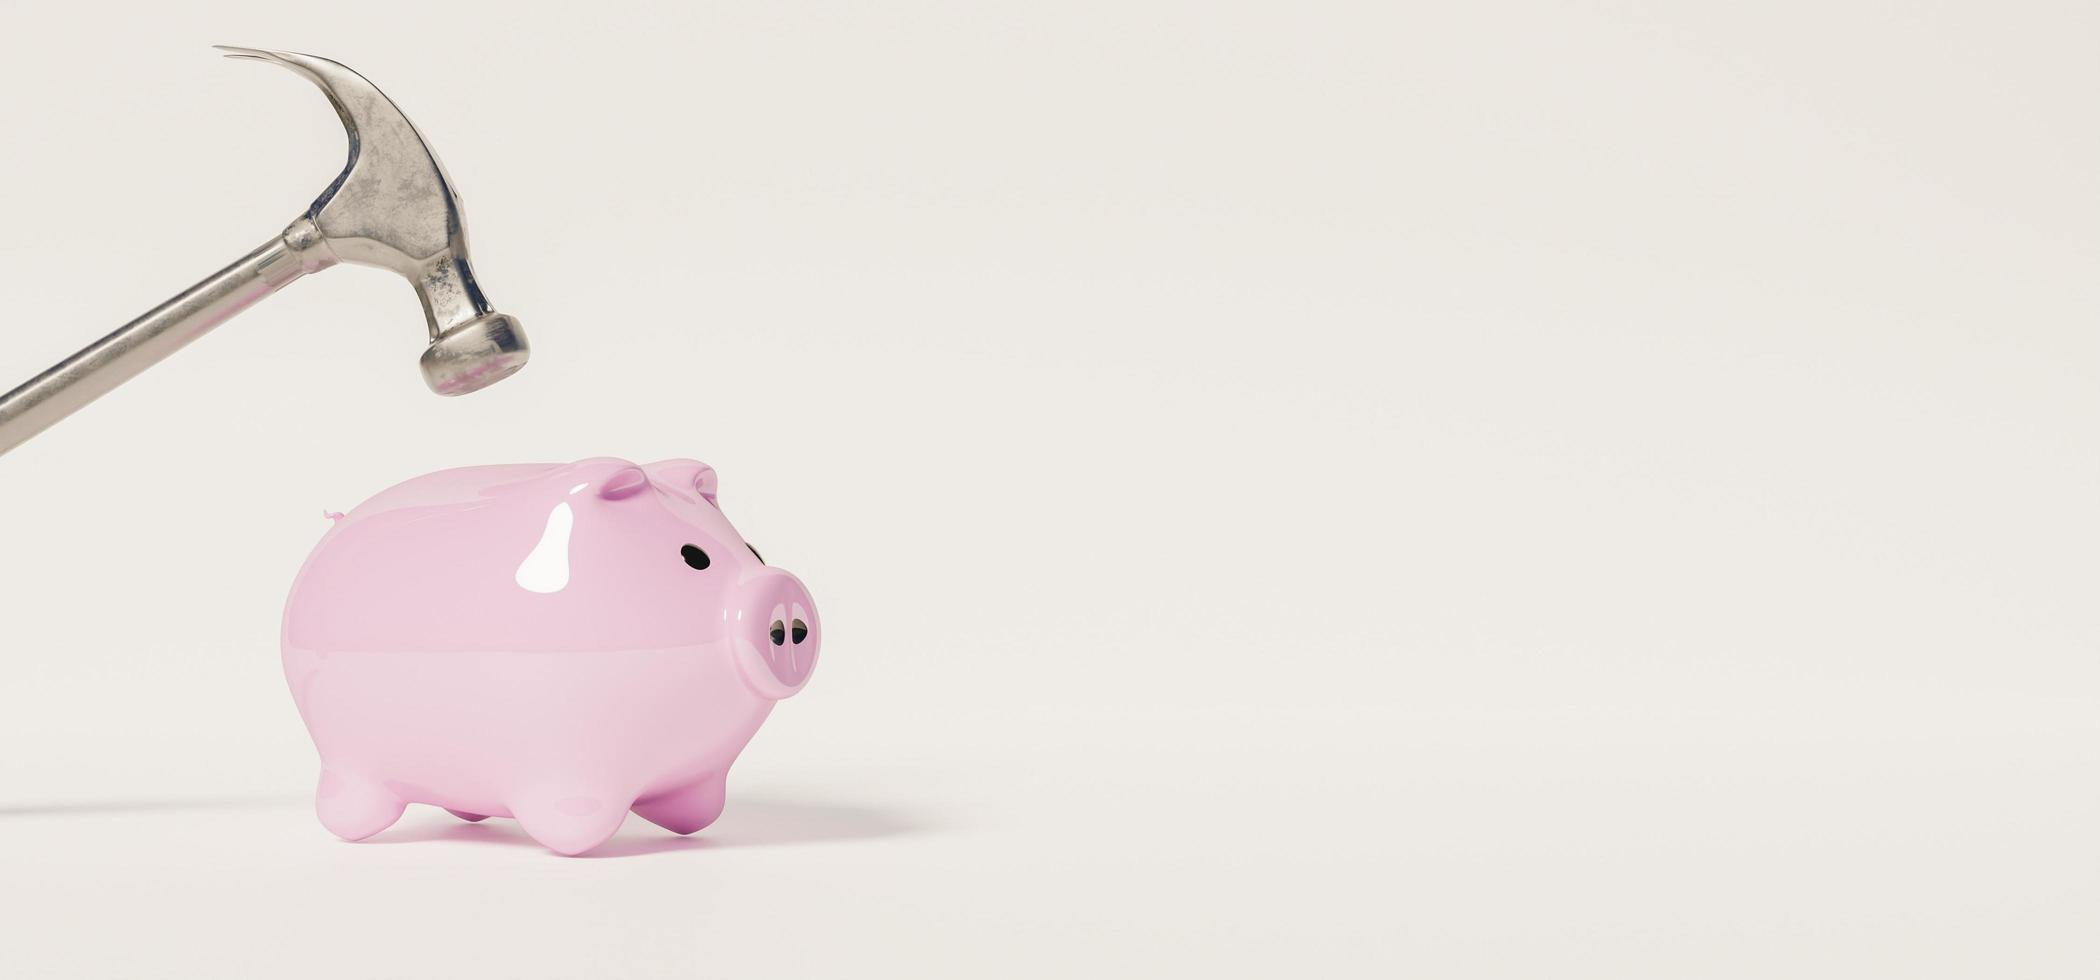 3D banner of small pink piggy bank with a hammer on top photo